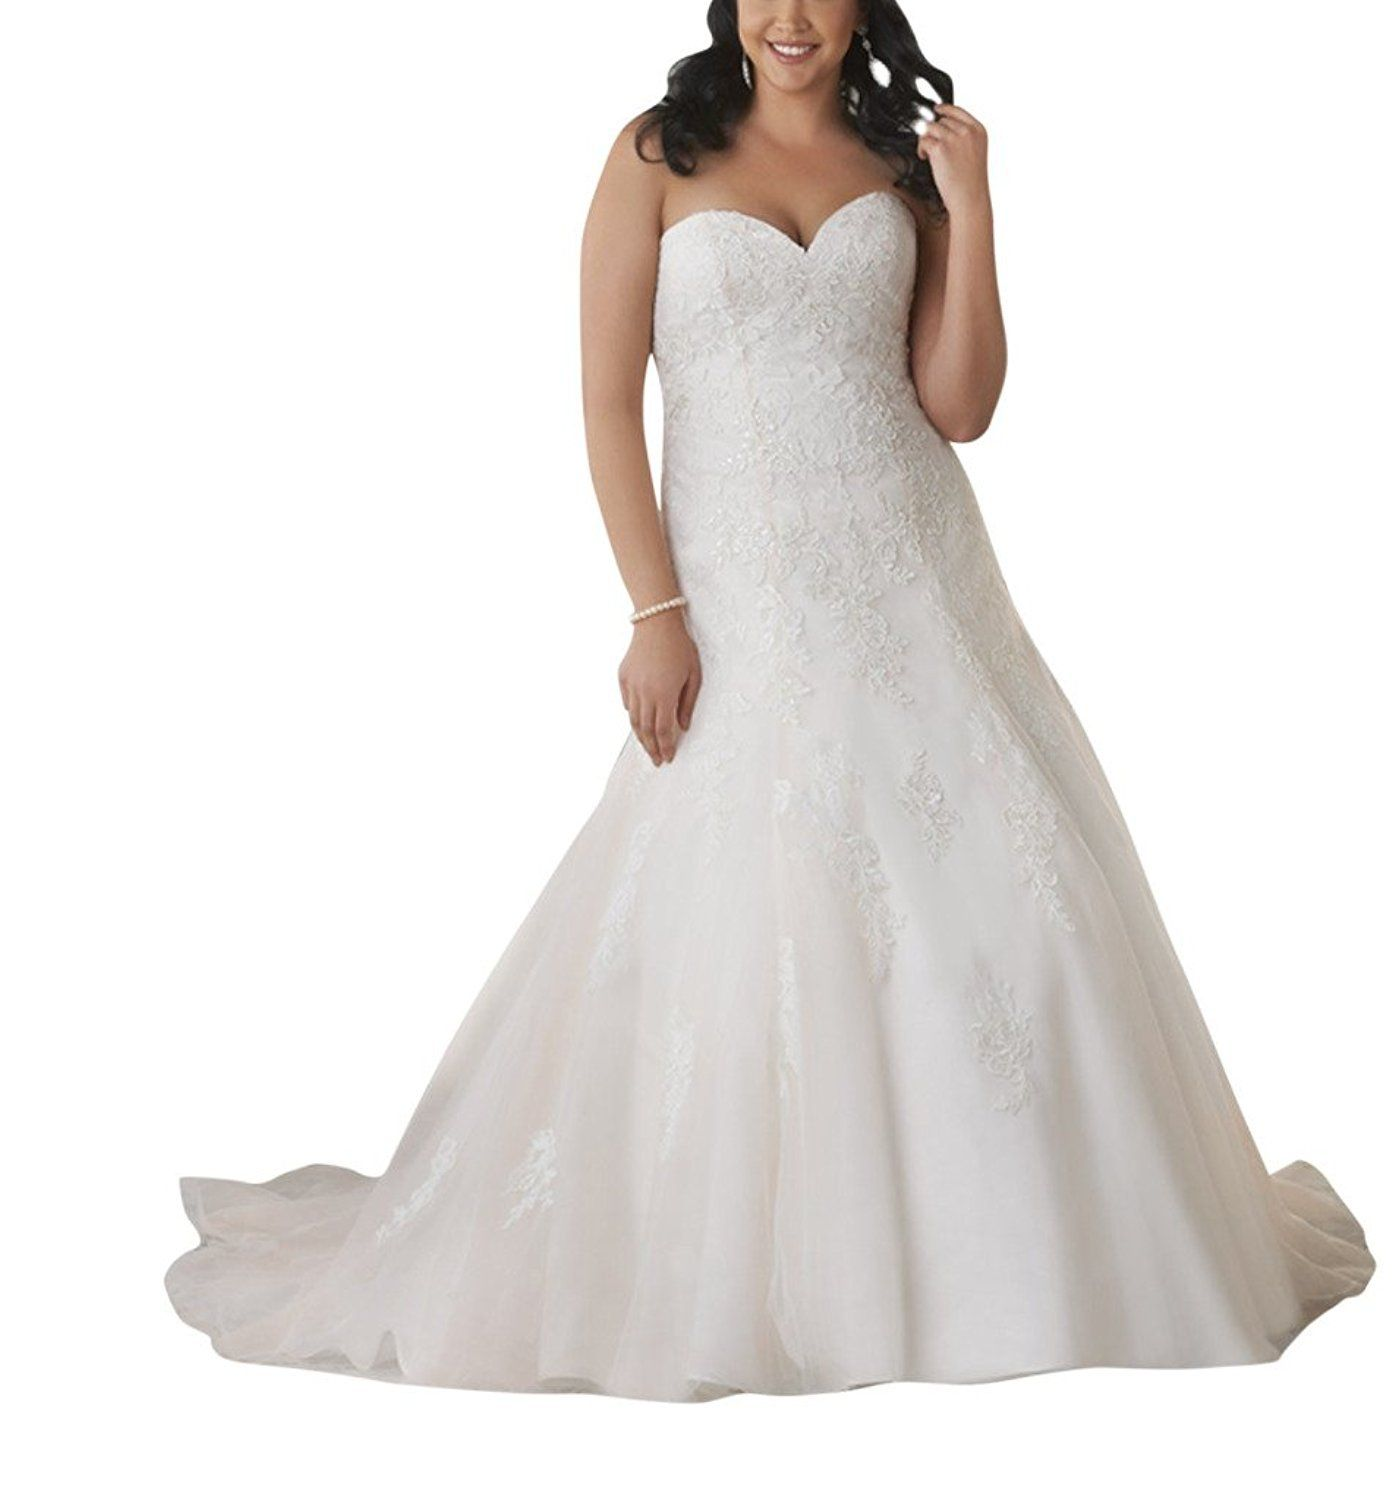 Mella Womenus Bridal Gowns Sweetheart A Line Wedding Dresses for